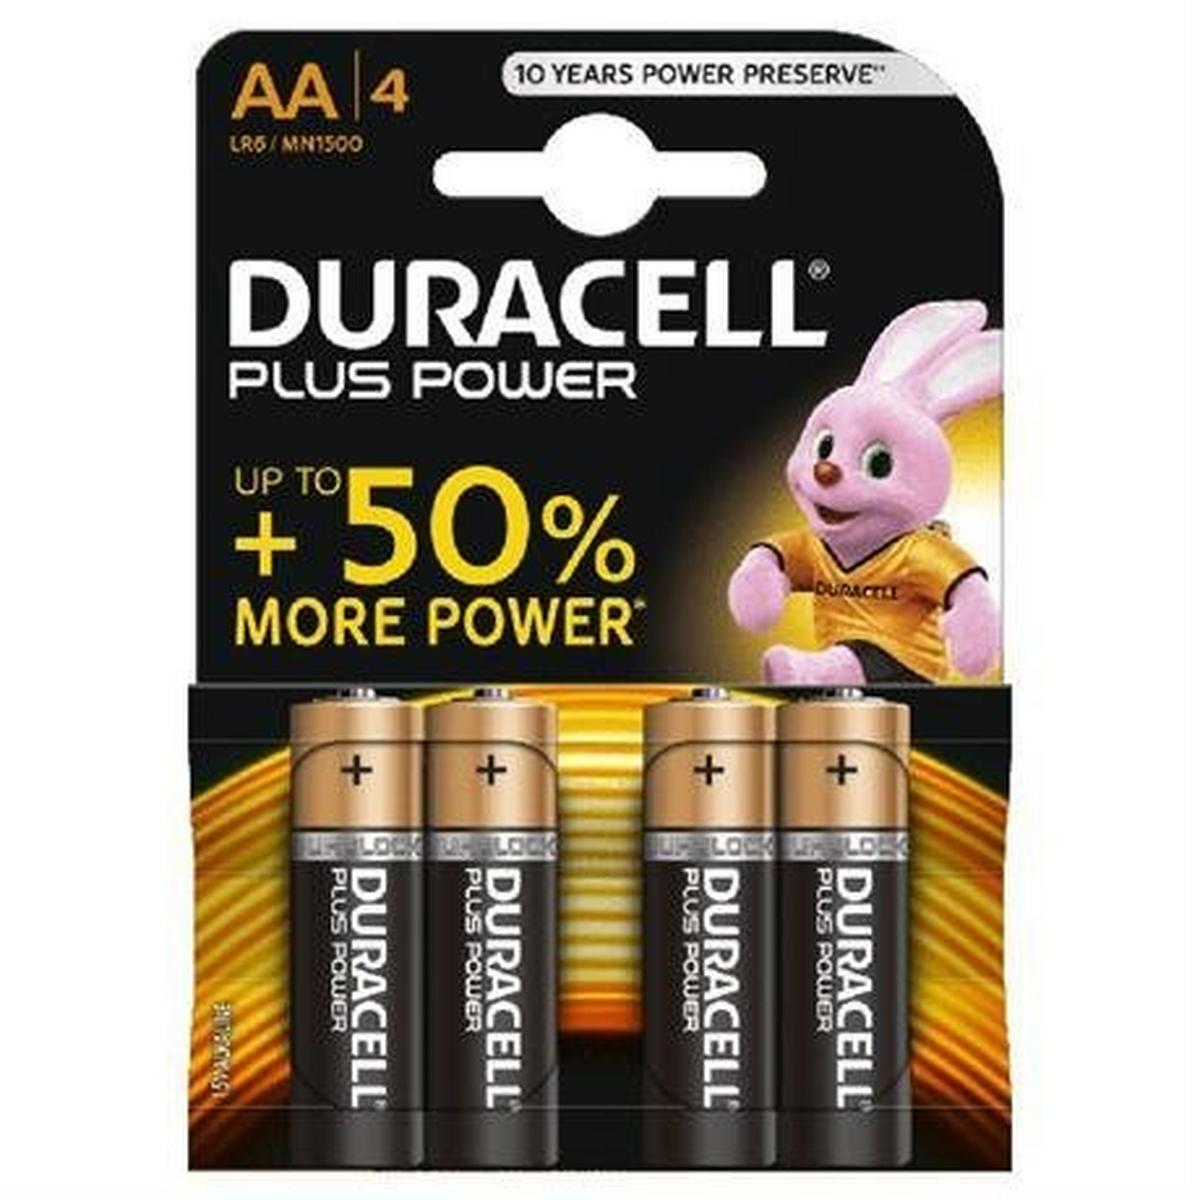 Duracell Batteries: Duracell MN1500K4P AA Cell 4 Pack